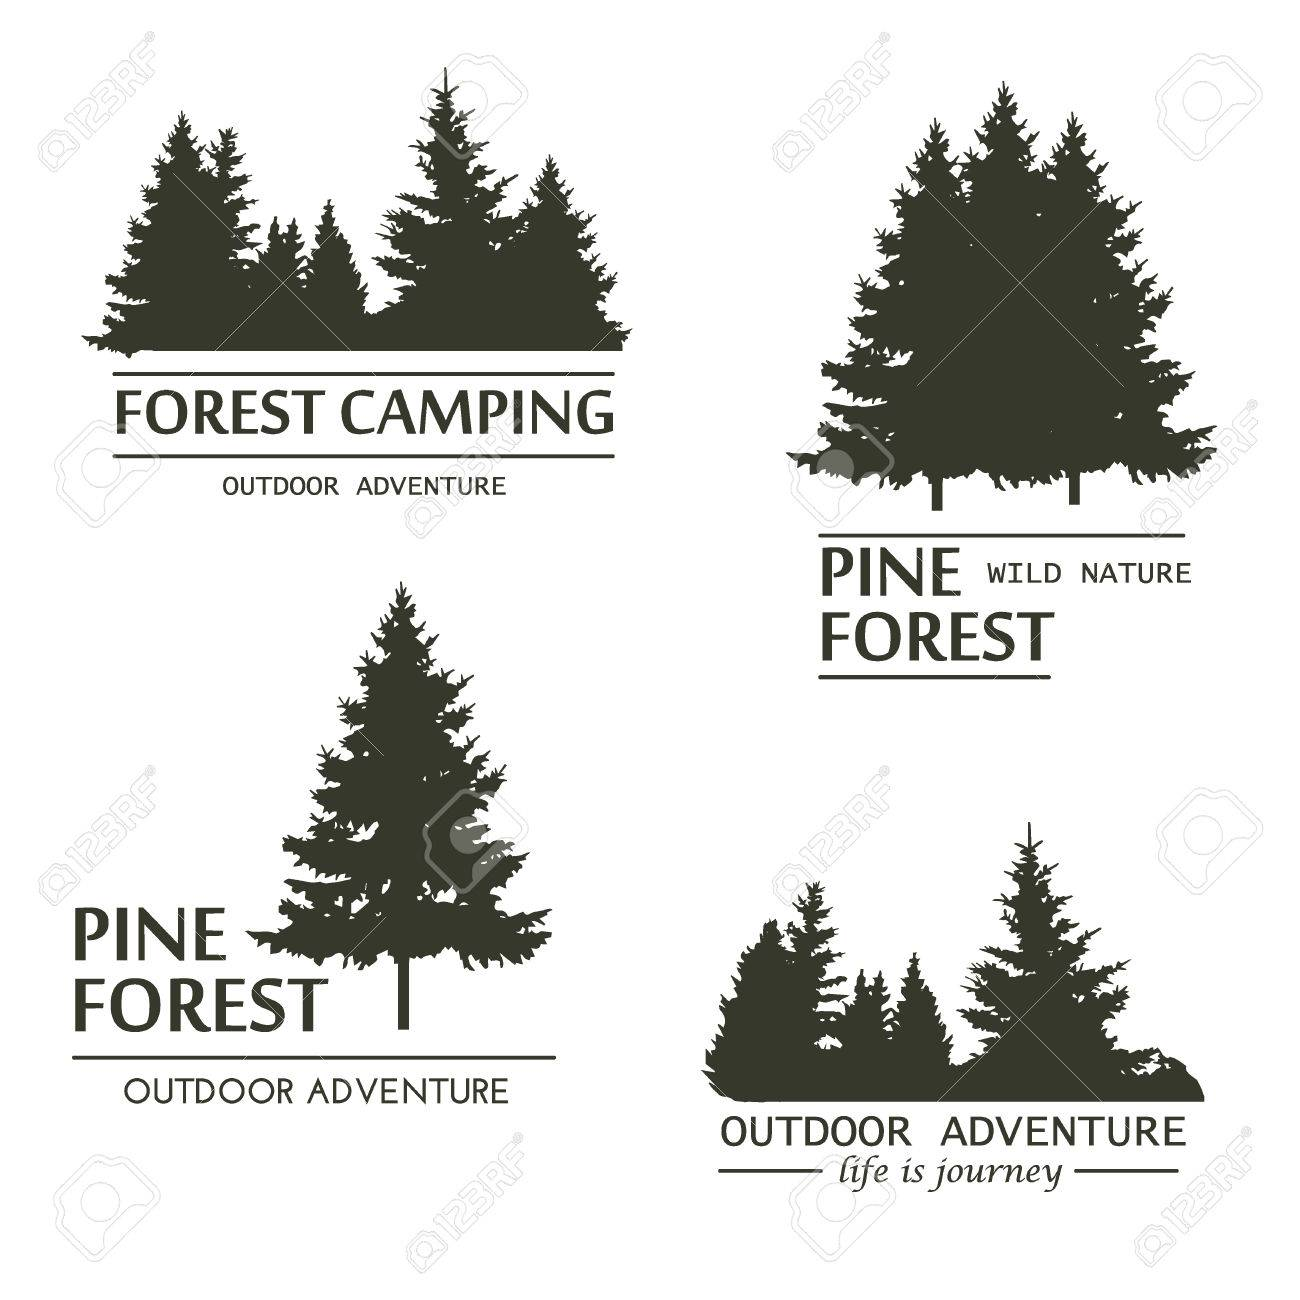 Fir trees silhouette . Pine plant wood branch natural forest silhouette. Trunk environment deciduous pine trees silhouette vector. Forest growth seasonal. Vintage forest design template. - 66917403